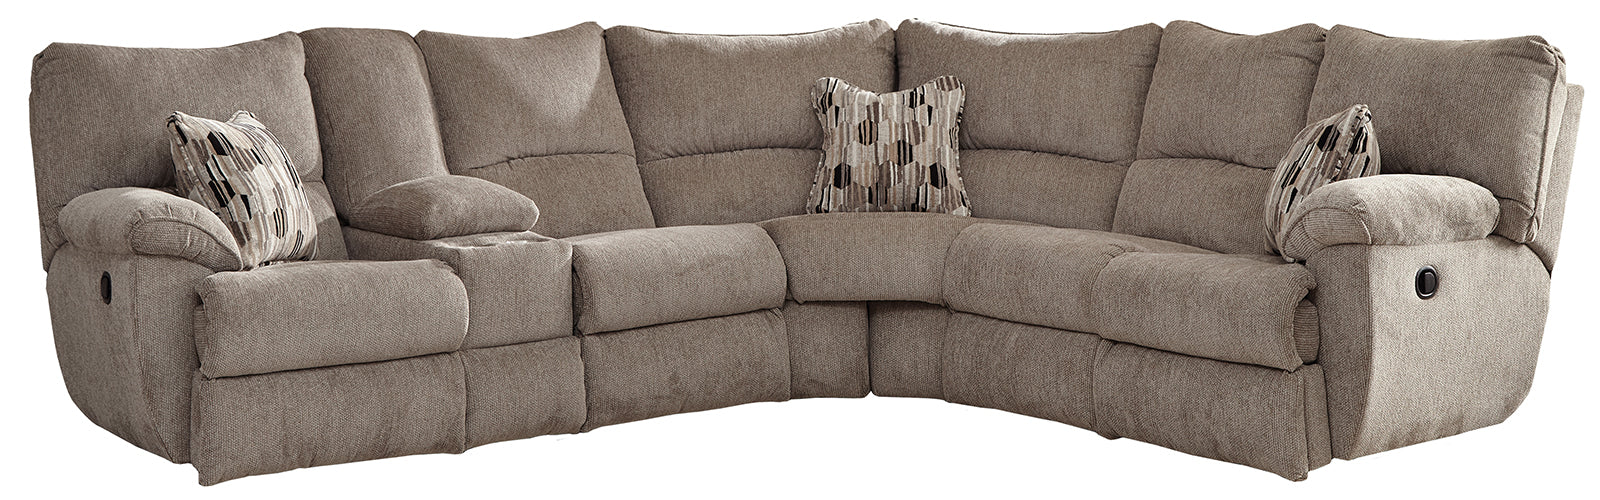 Catnapper Elliott 2pc Power Lay Flat Reclining Sectional in Pewter